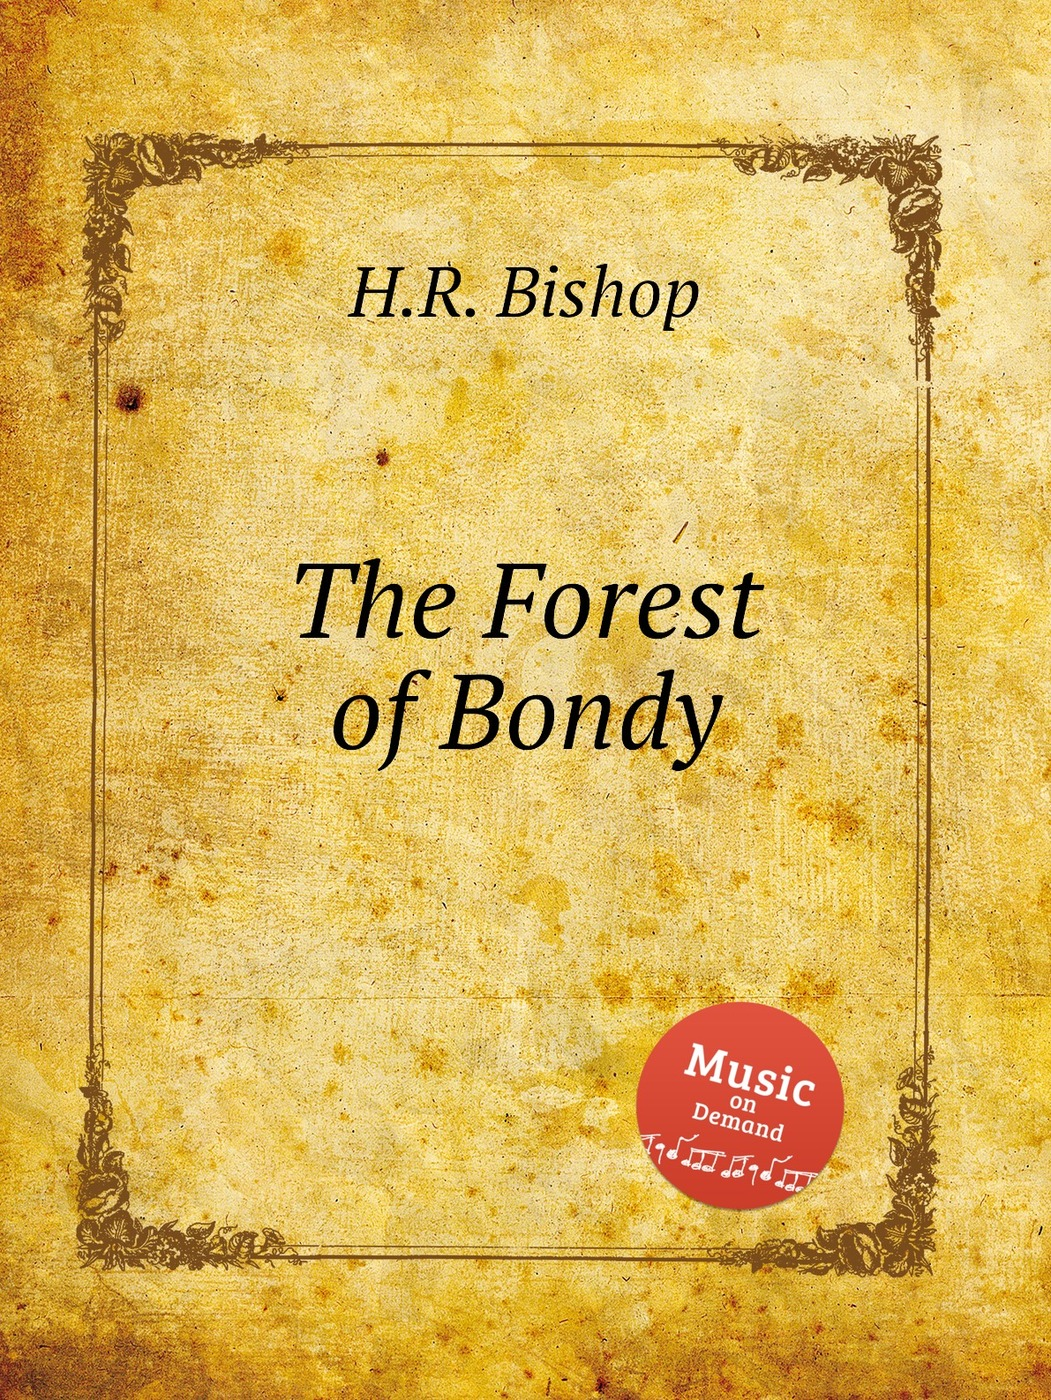 The Forest of Bondy